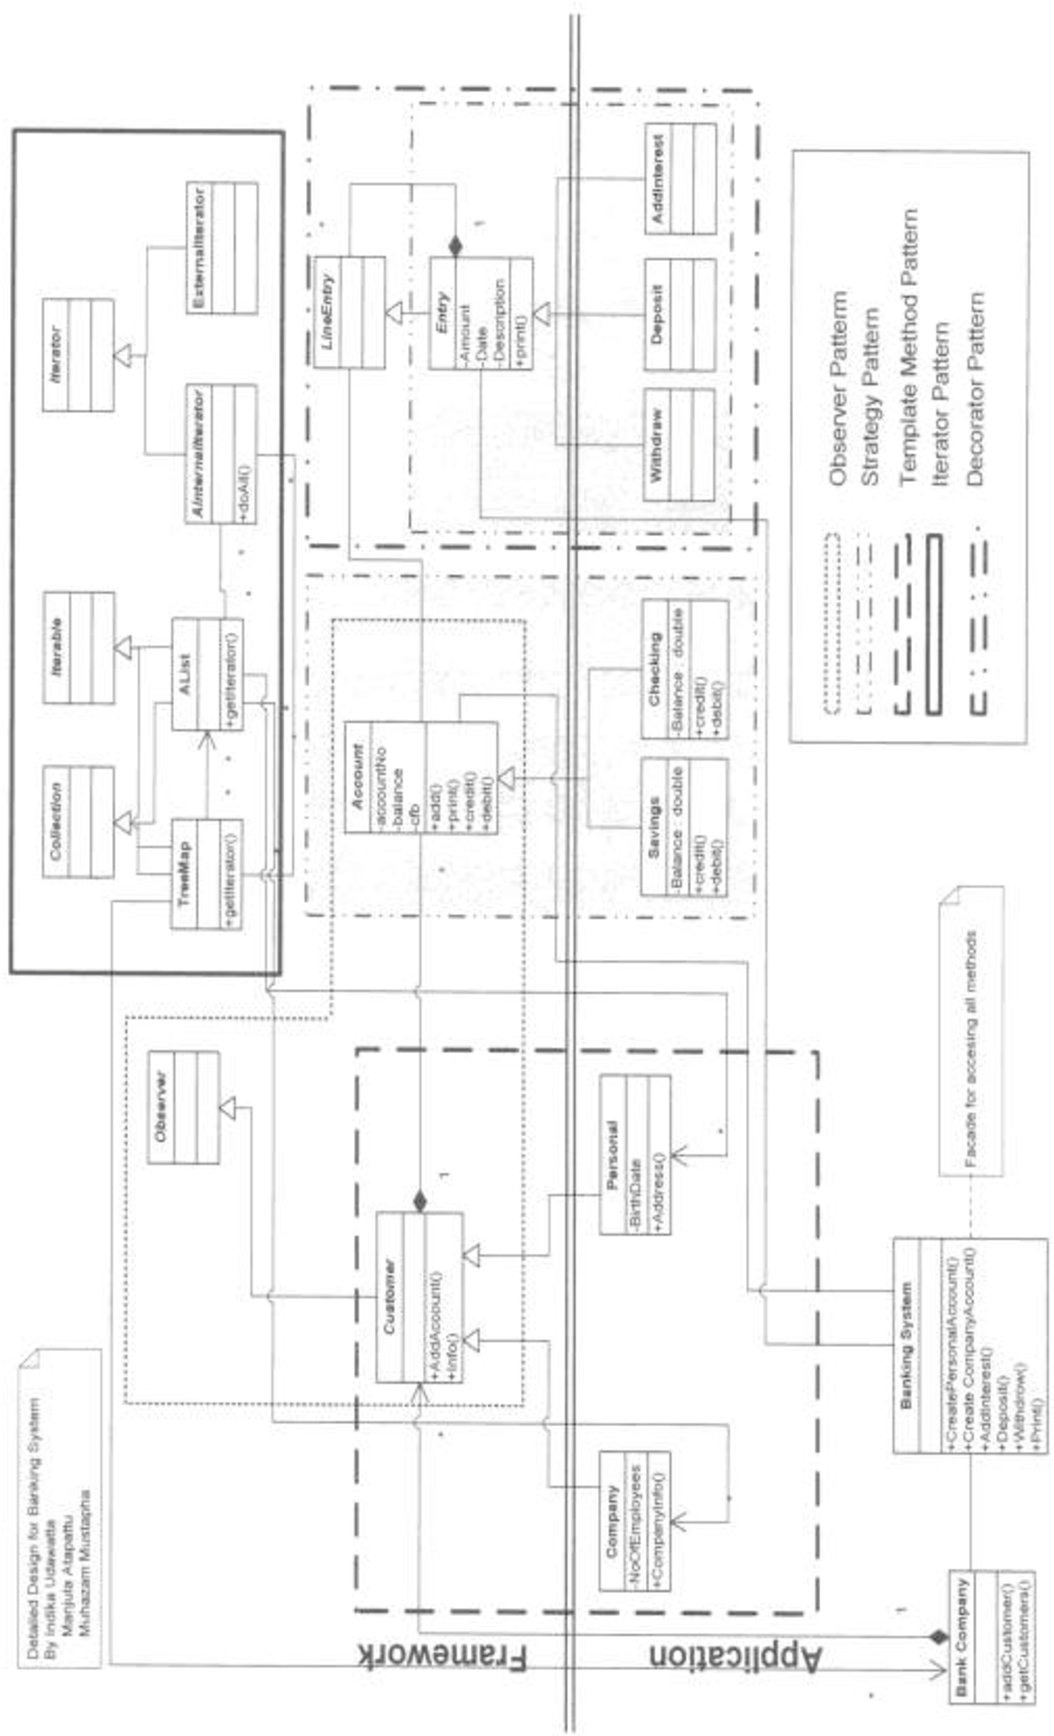 Conversion Strategy Of A System Of Collaborating Design Patternsinto Uml Diagram For Design Pattern Semantic Scholar